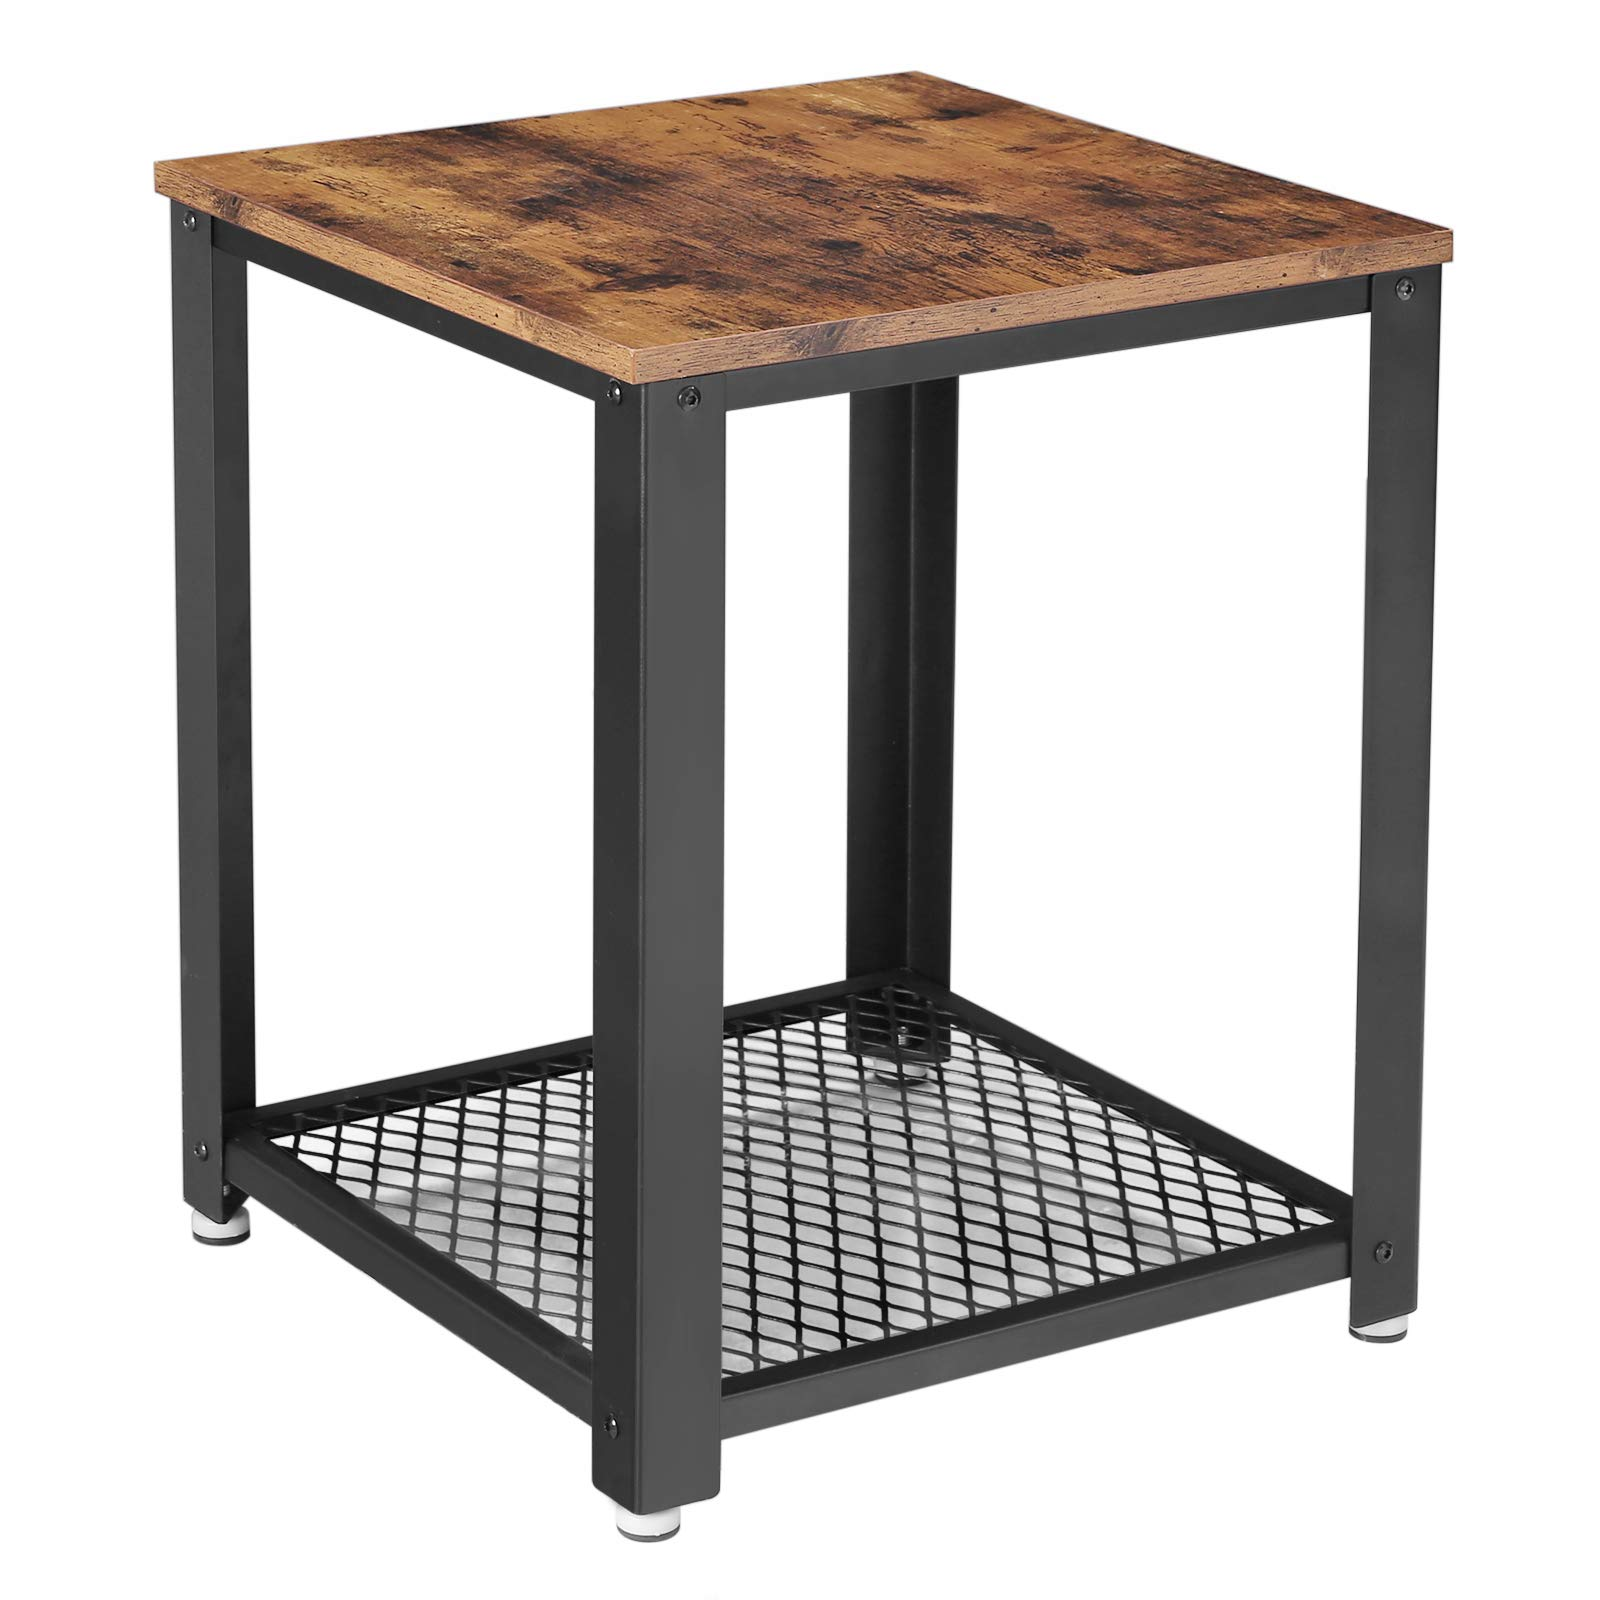 VASAGLE Industrial End Table, 2-Tier Side Table with Storage Shelf, Sturdy, Easy Assembly, Wood Look Accent Furniture, with Metal Frame, Rustic Brown ULET41X by VASAGLE